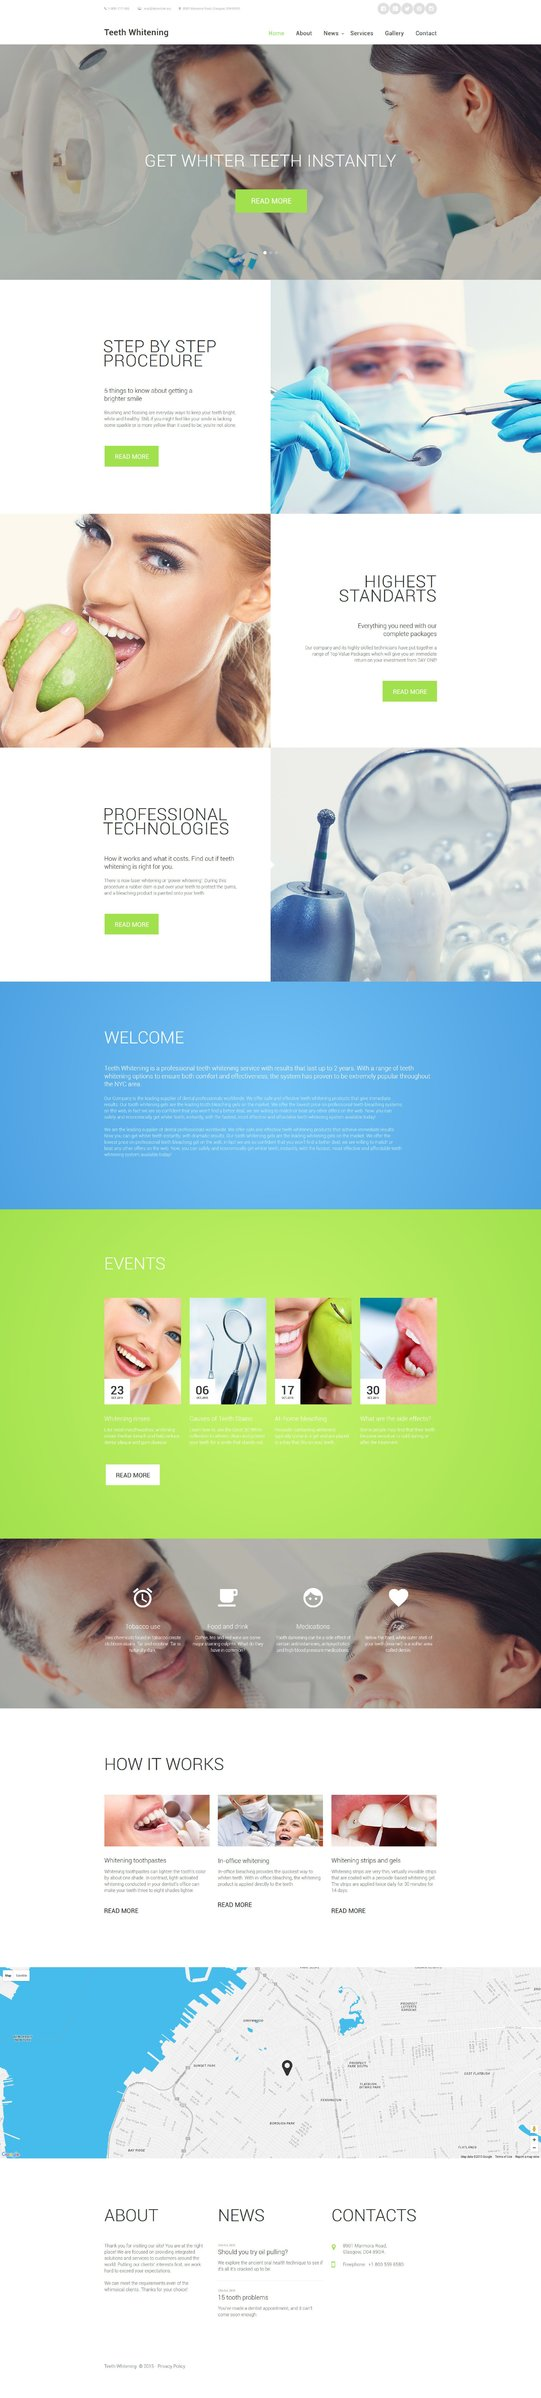 Hospital Website Templates - Weblium